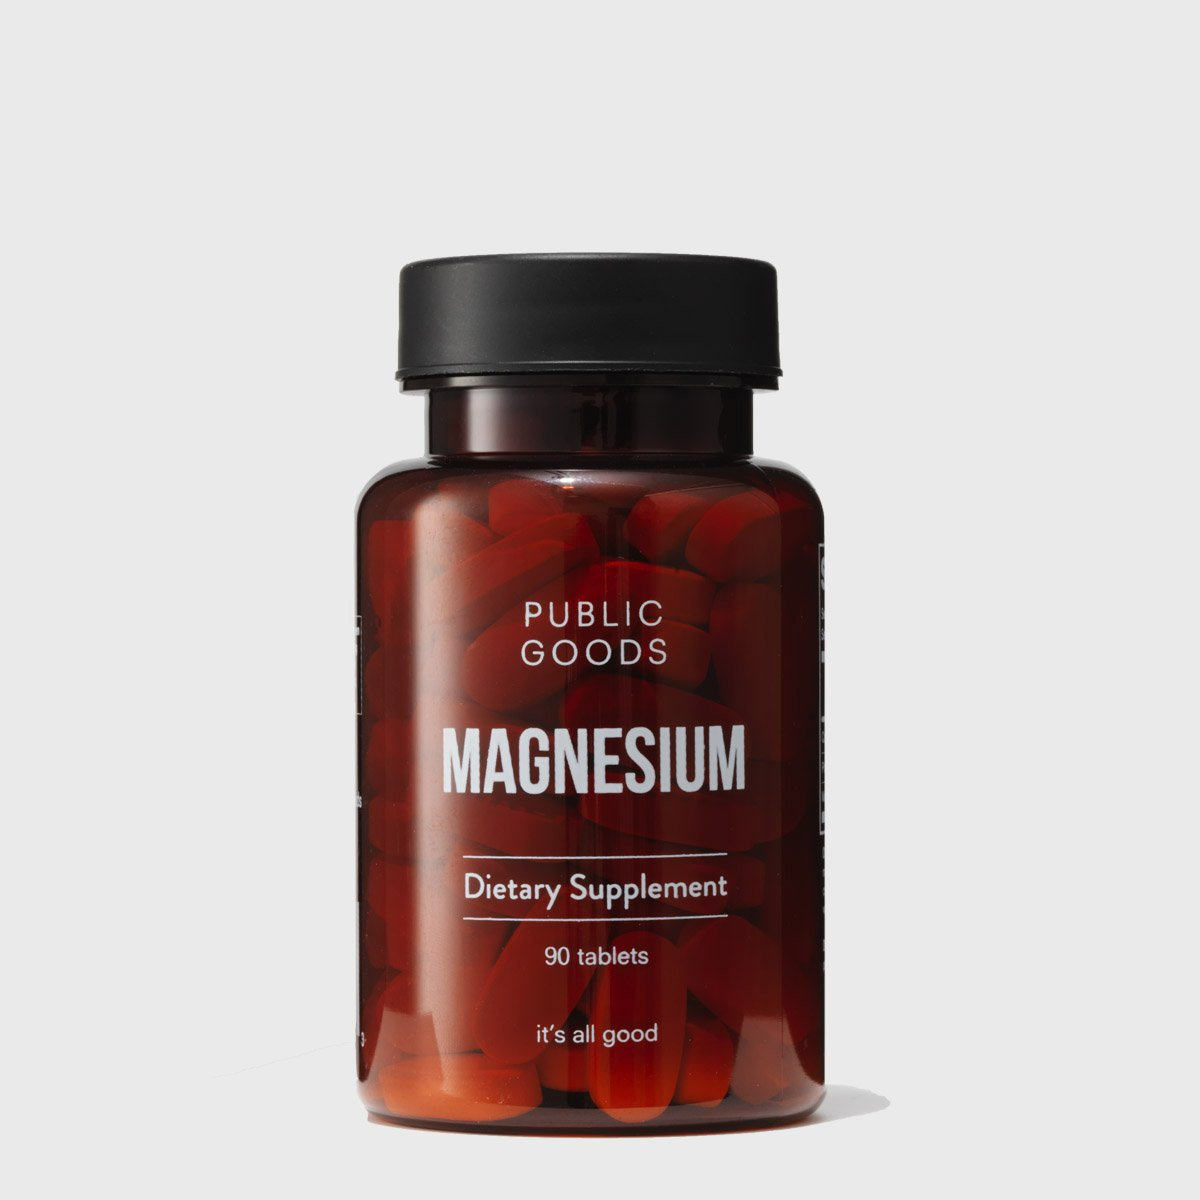 Magnesium  - $6.50 for 90 count